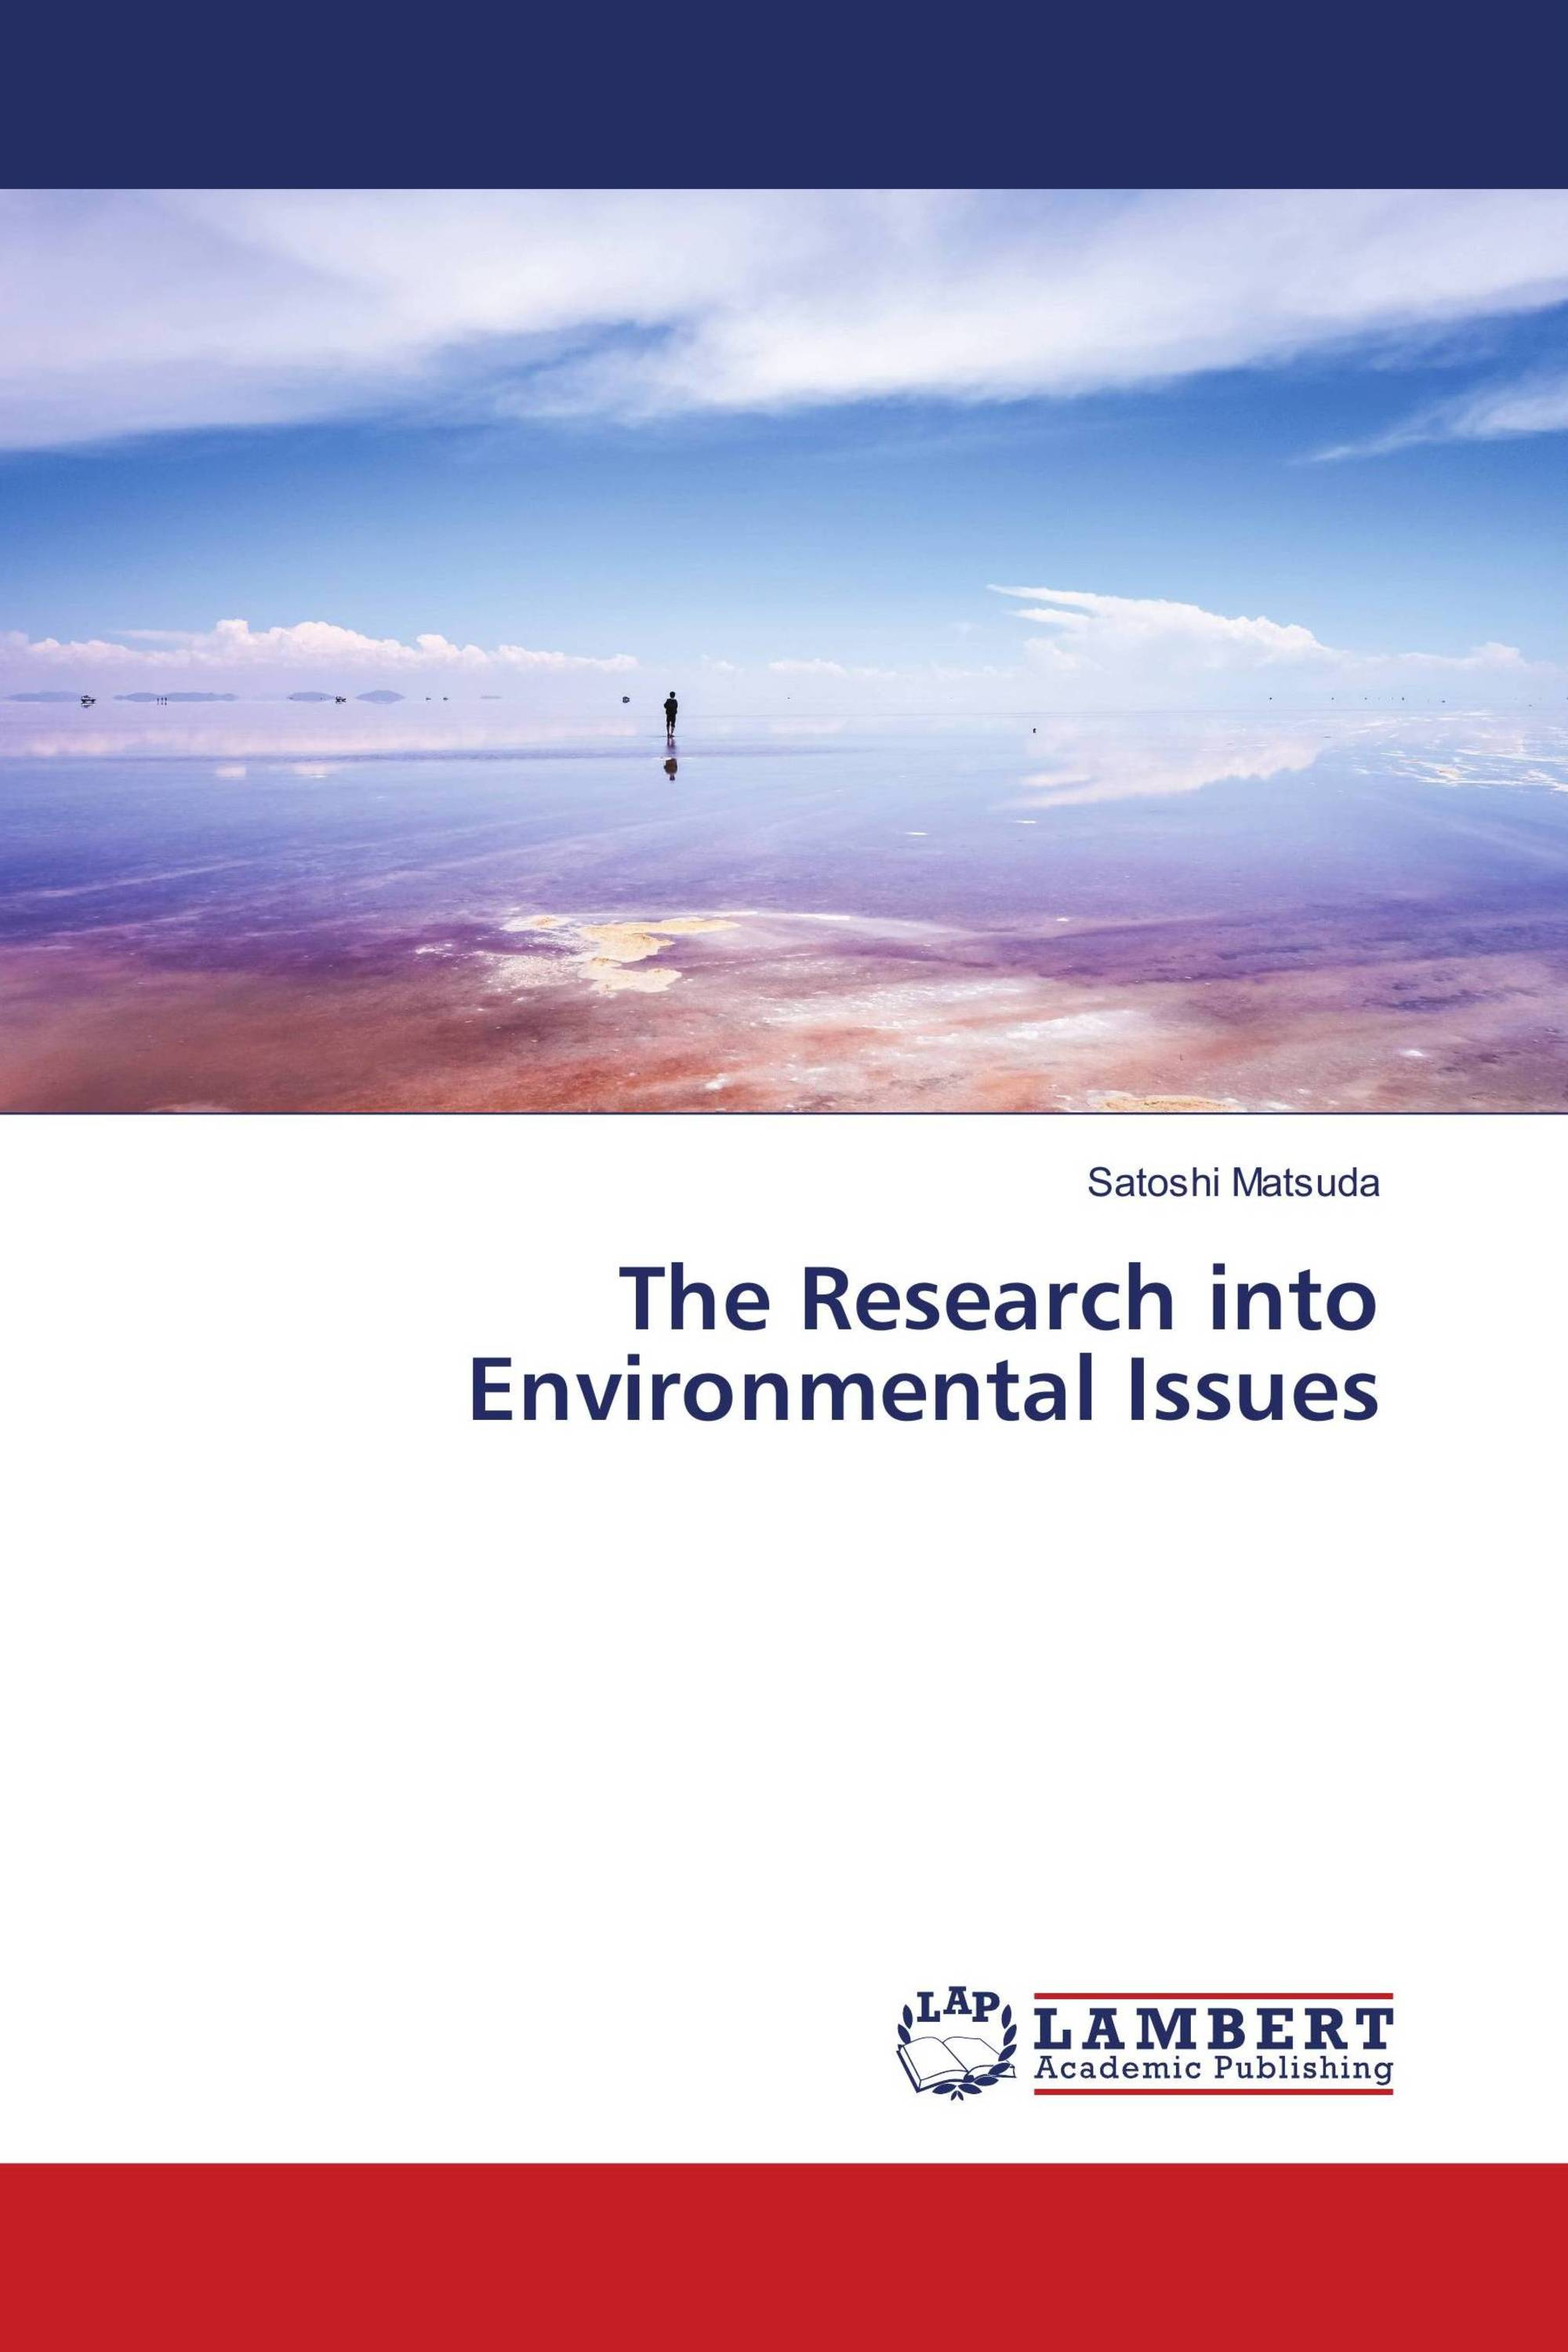 The Research into Environmental Issues